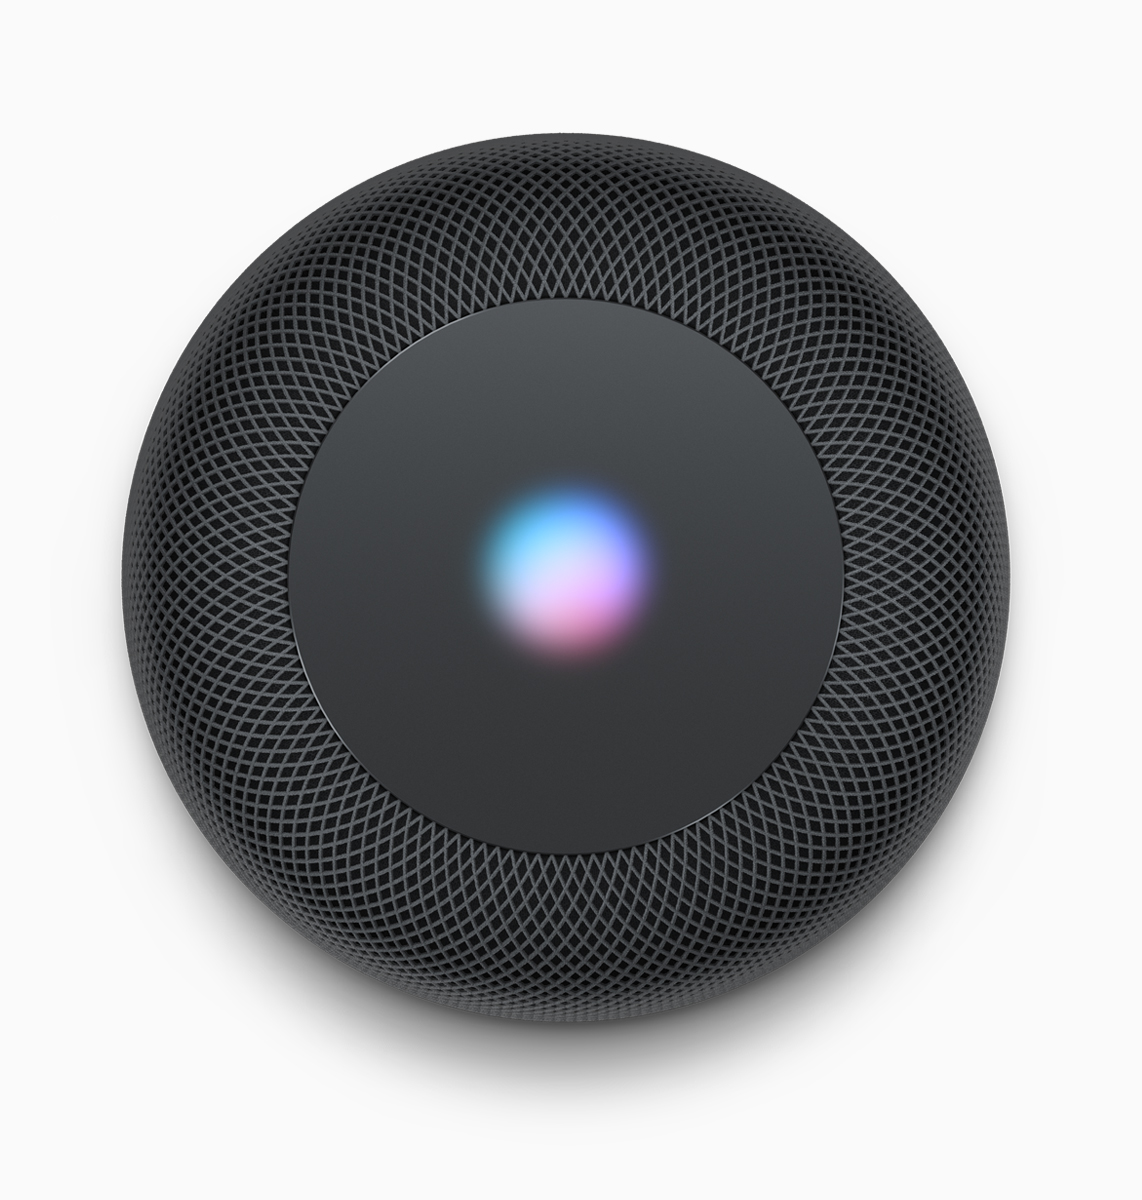 180124_all_about_homepod_2